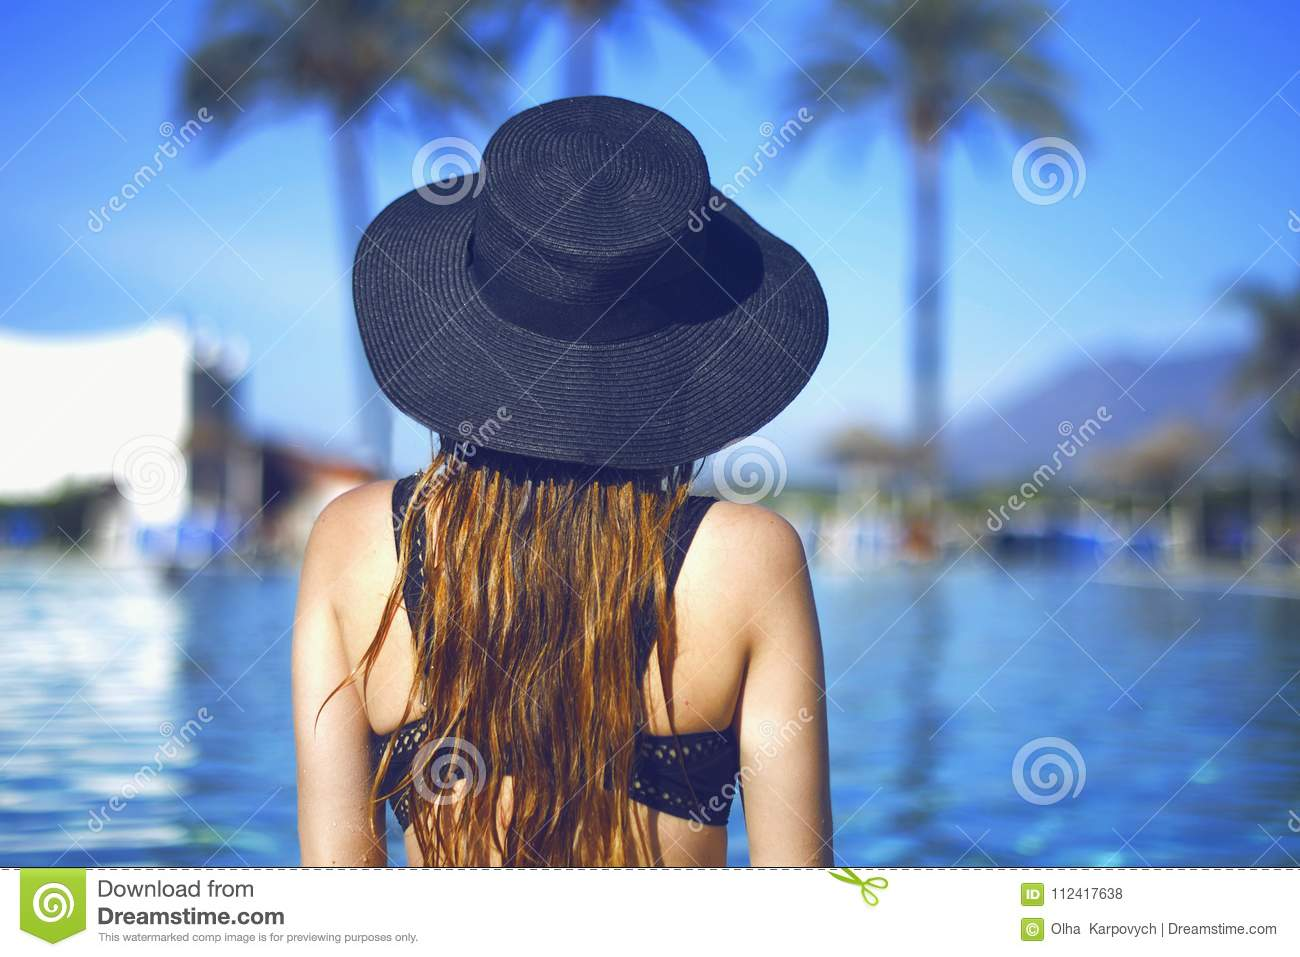 Young beautiful smile girl in black fashion hat, red lips and long hair, posing near pool beackground of palms.